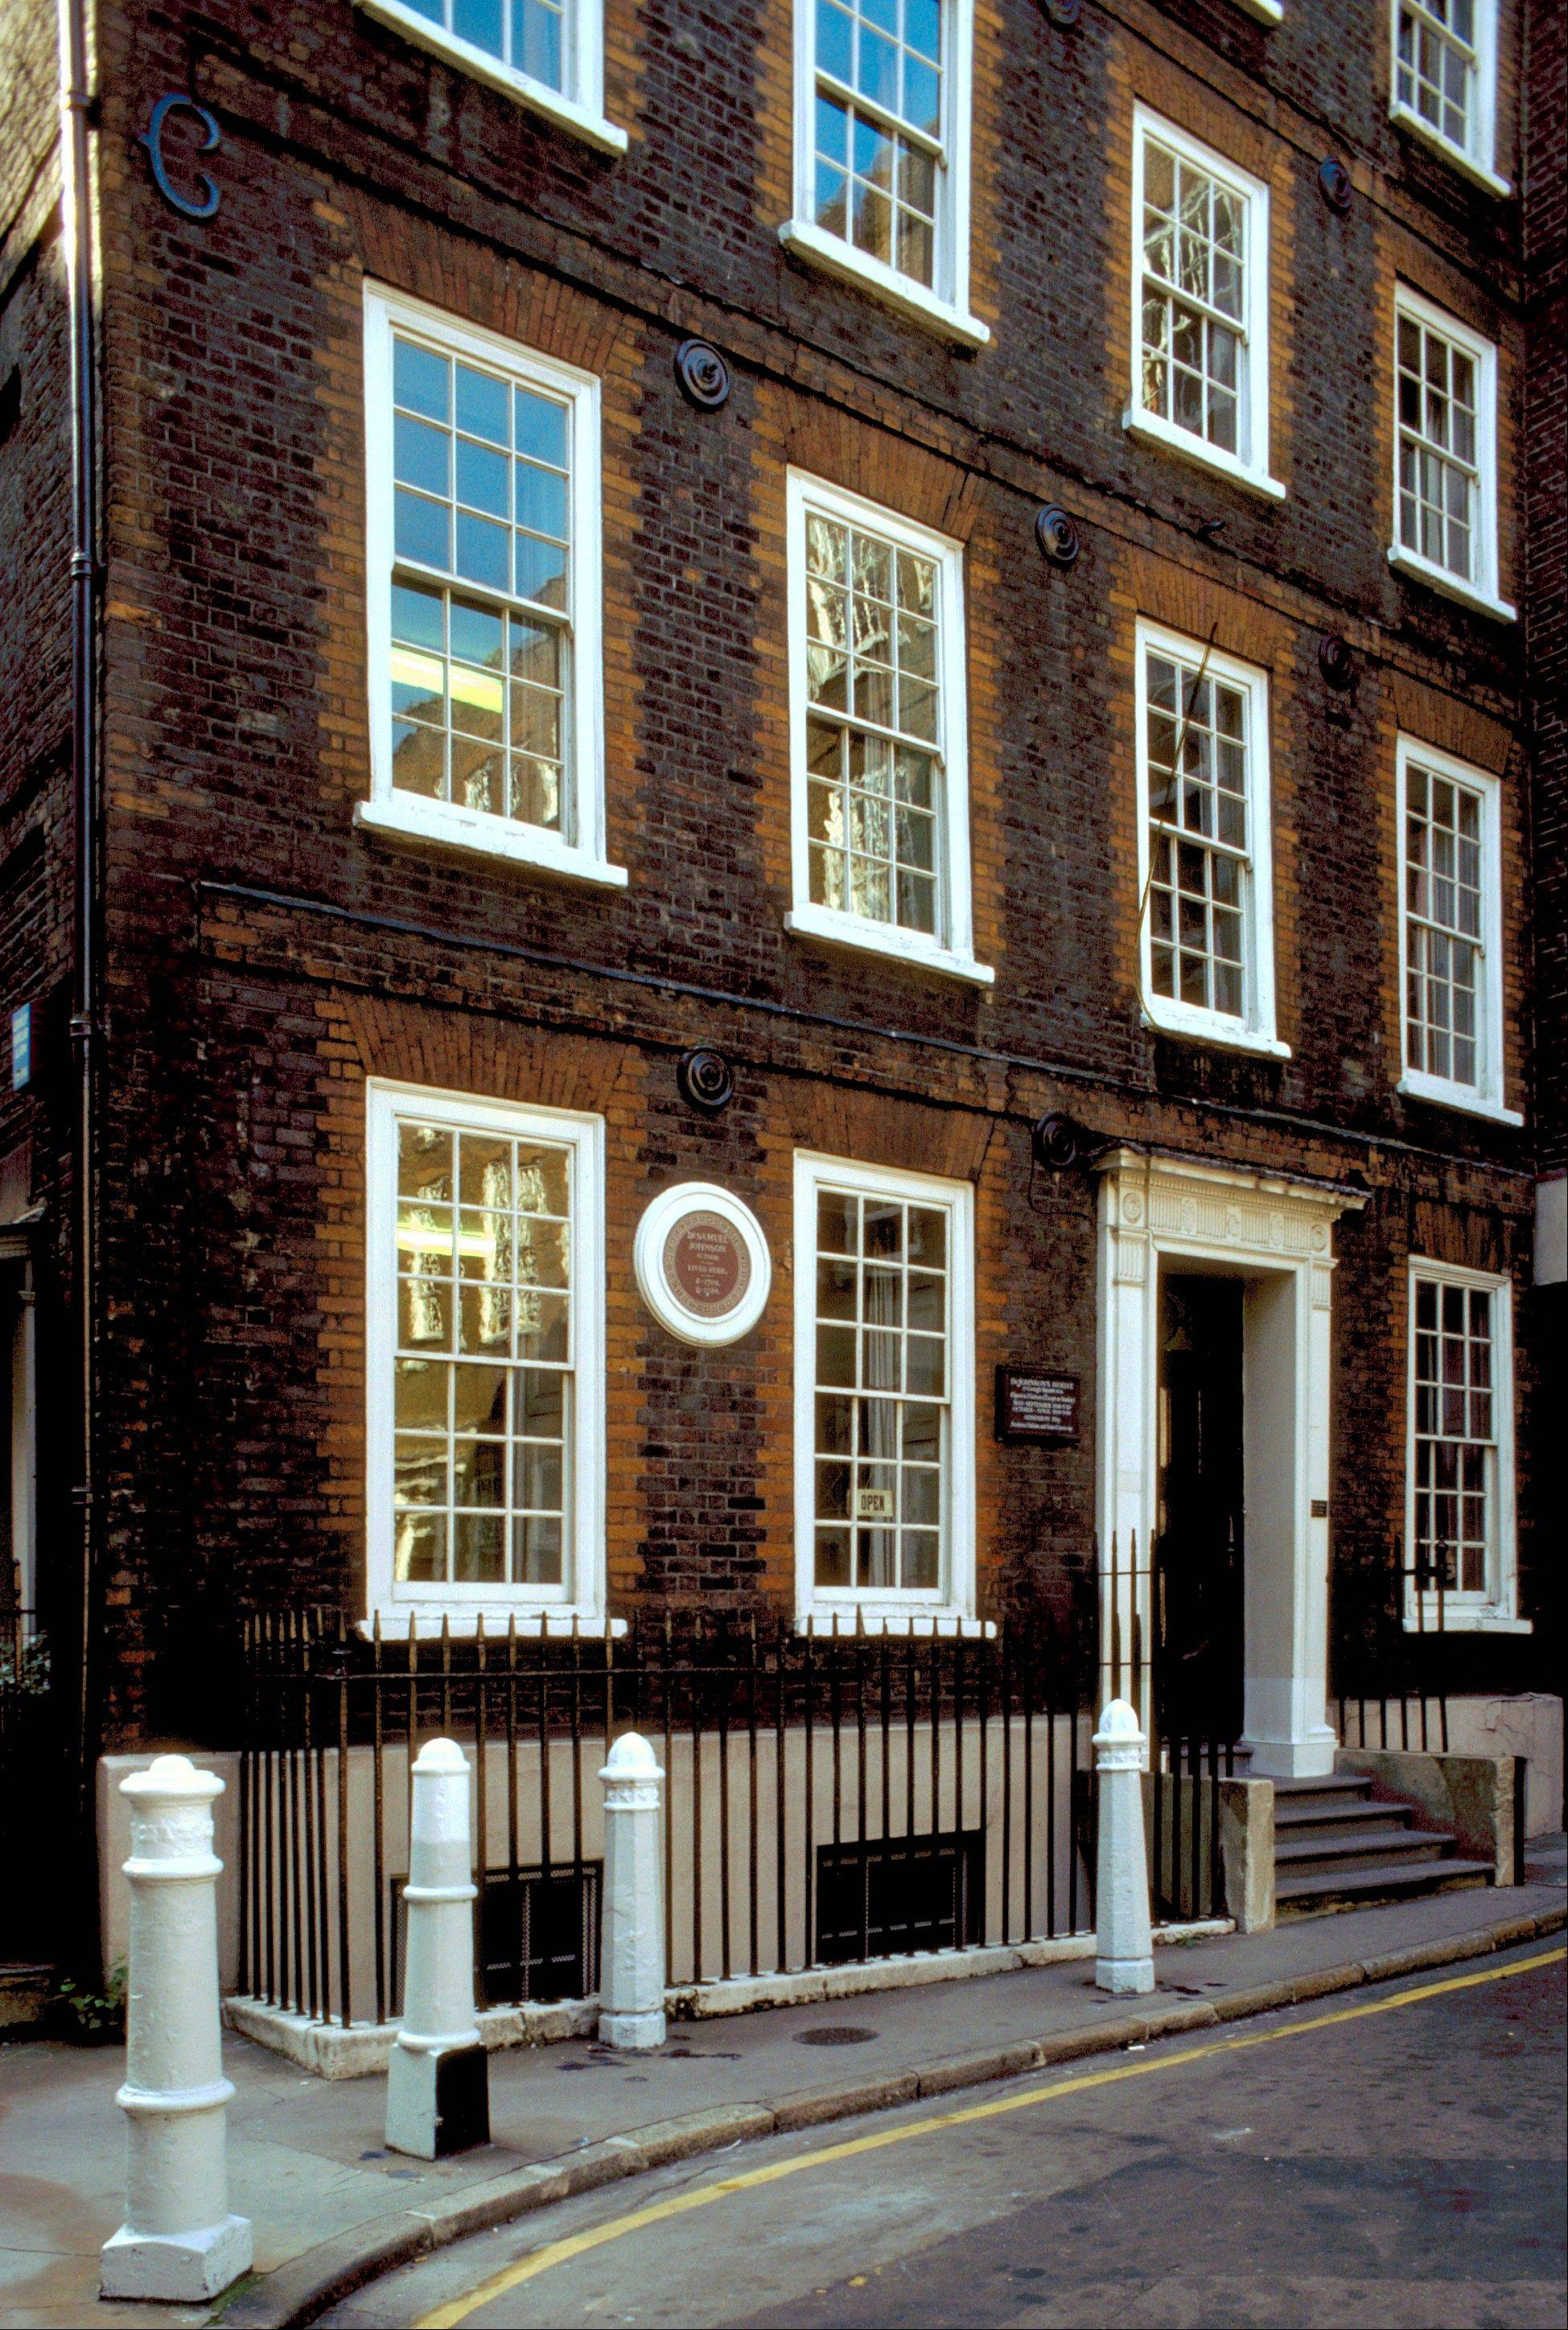 Dr. Johnson's House, is a small museum in the 300-year-old townhouse where Samuel Johnson lived in London. Johnson was an author, critic and lexicographer who wrote A Dictionary of the English Language.